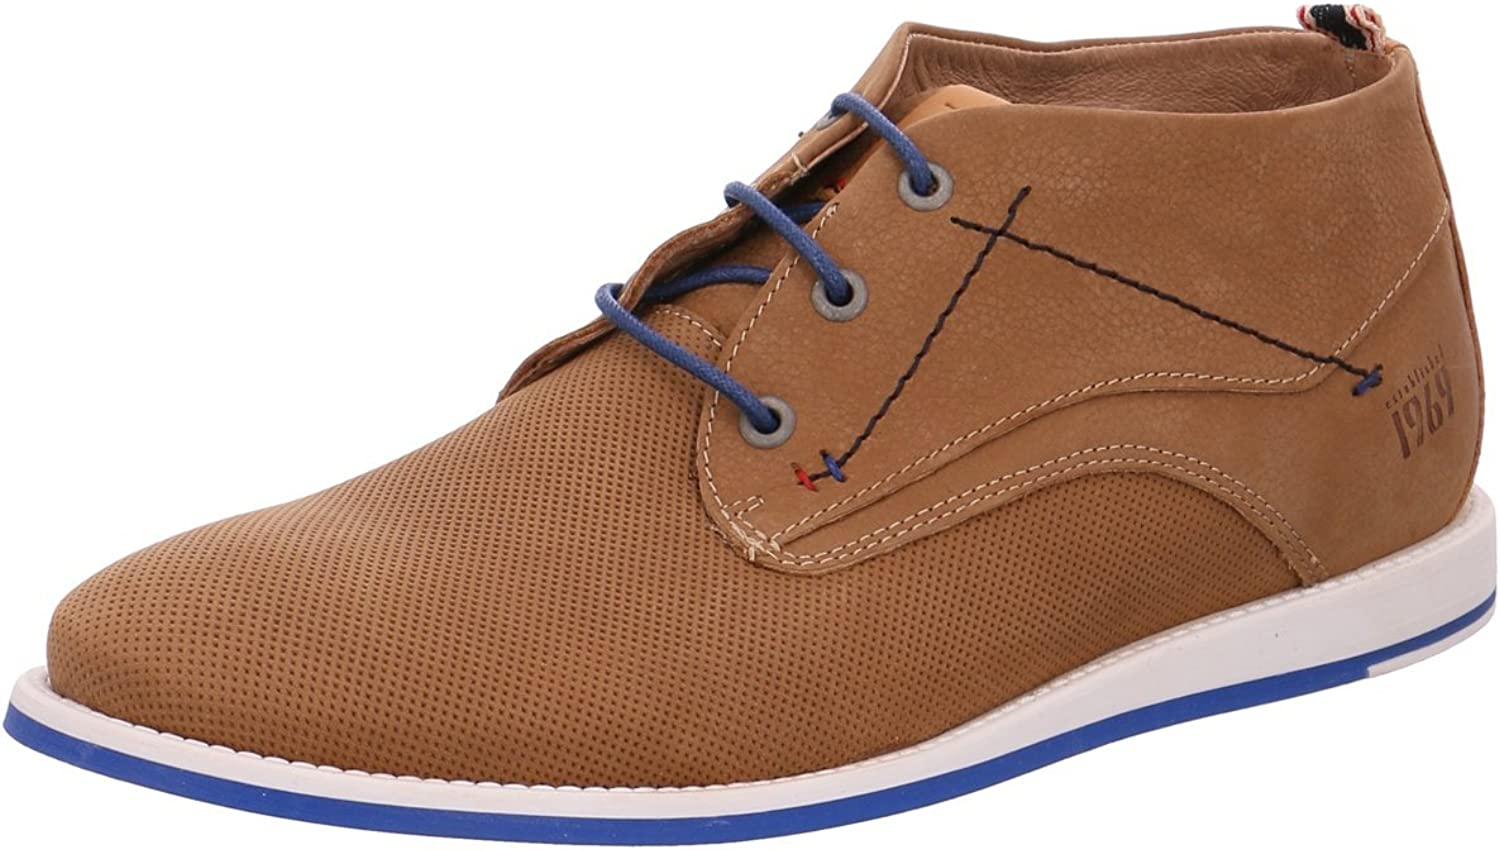 S.Oliver Mens shoes 5-5-15106-38 Fashionable Men's Leisure shoes, Sneakers, Trainers, Lace-Up Flats, Lace-Up shoes, Leather shoes, ankle-high with Lacing